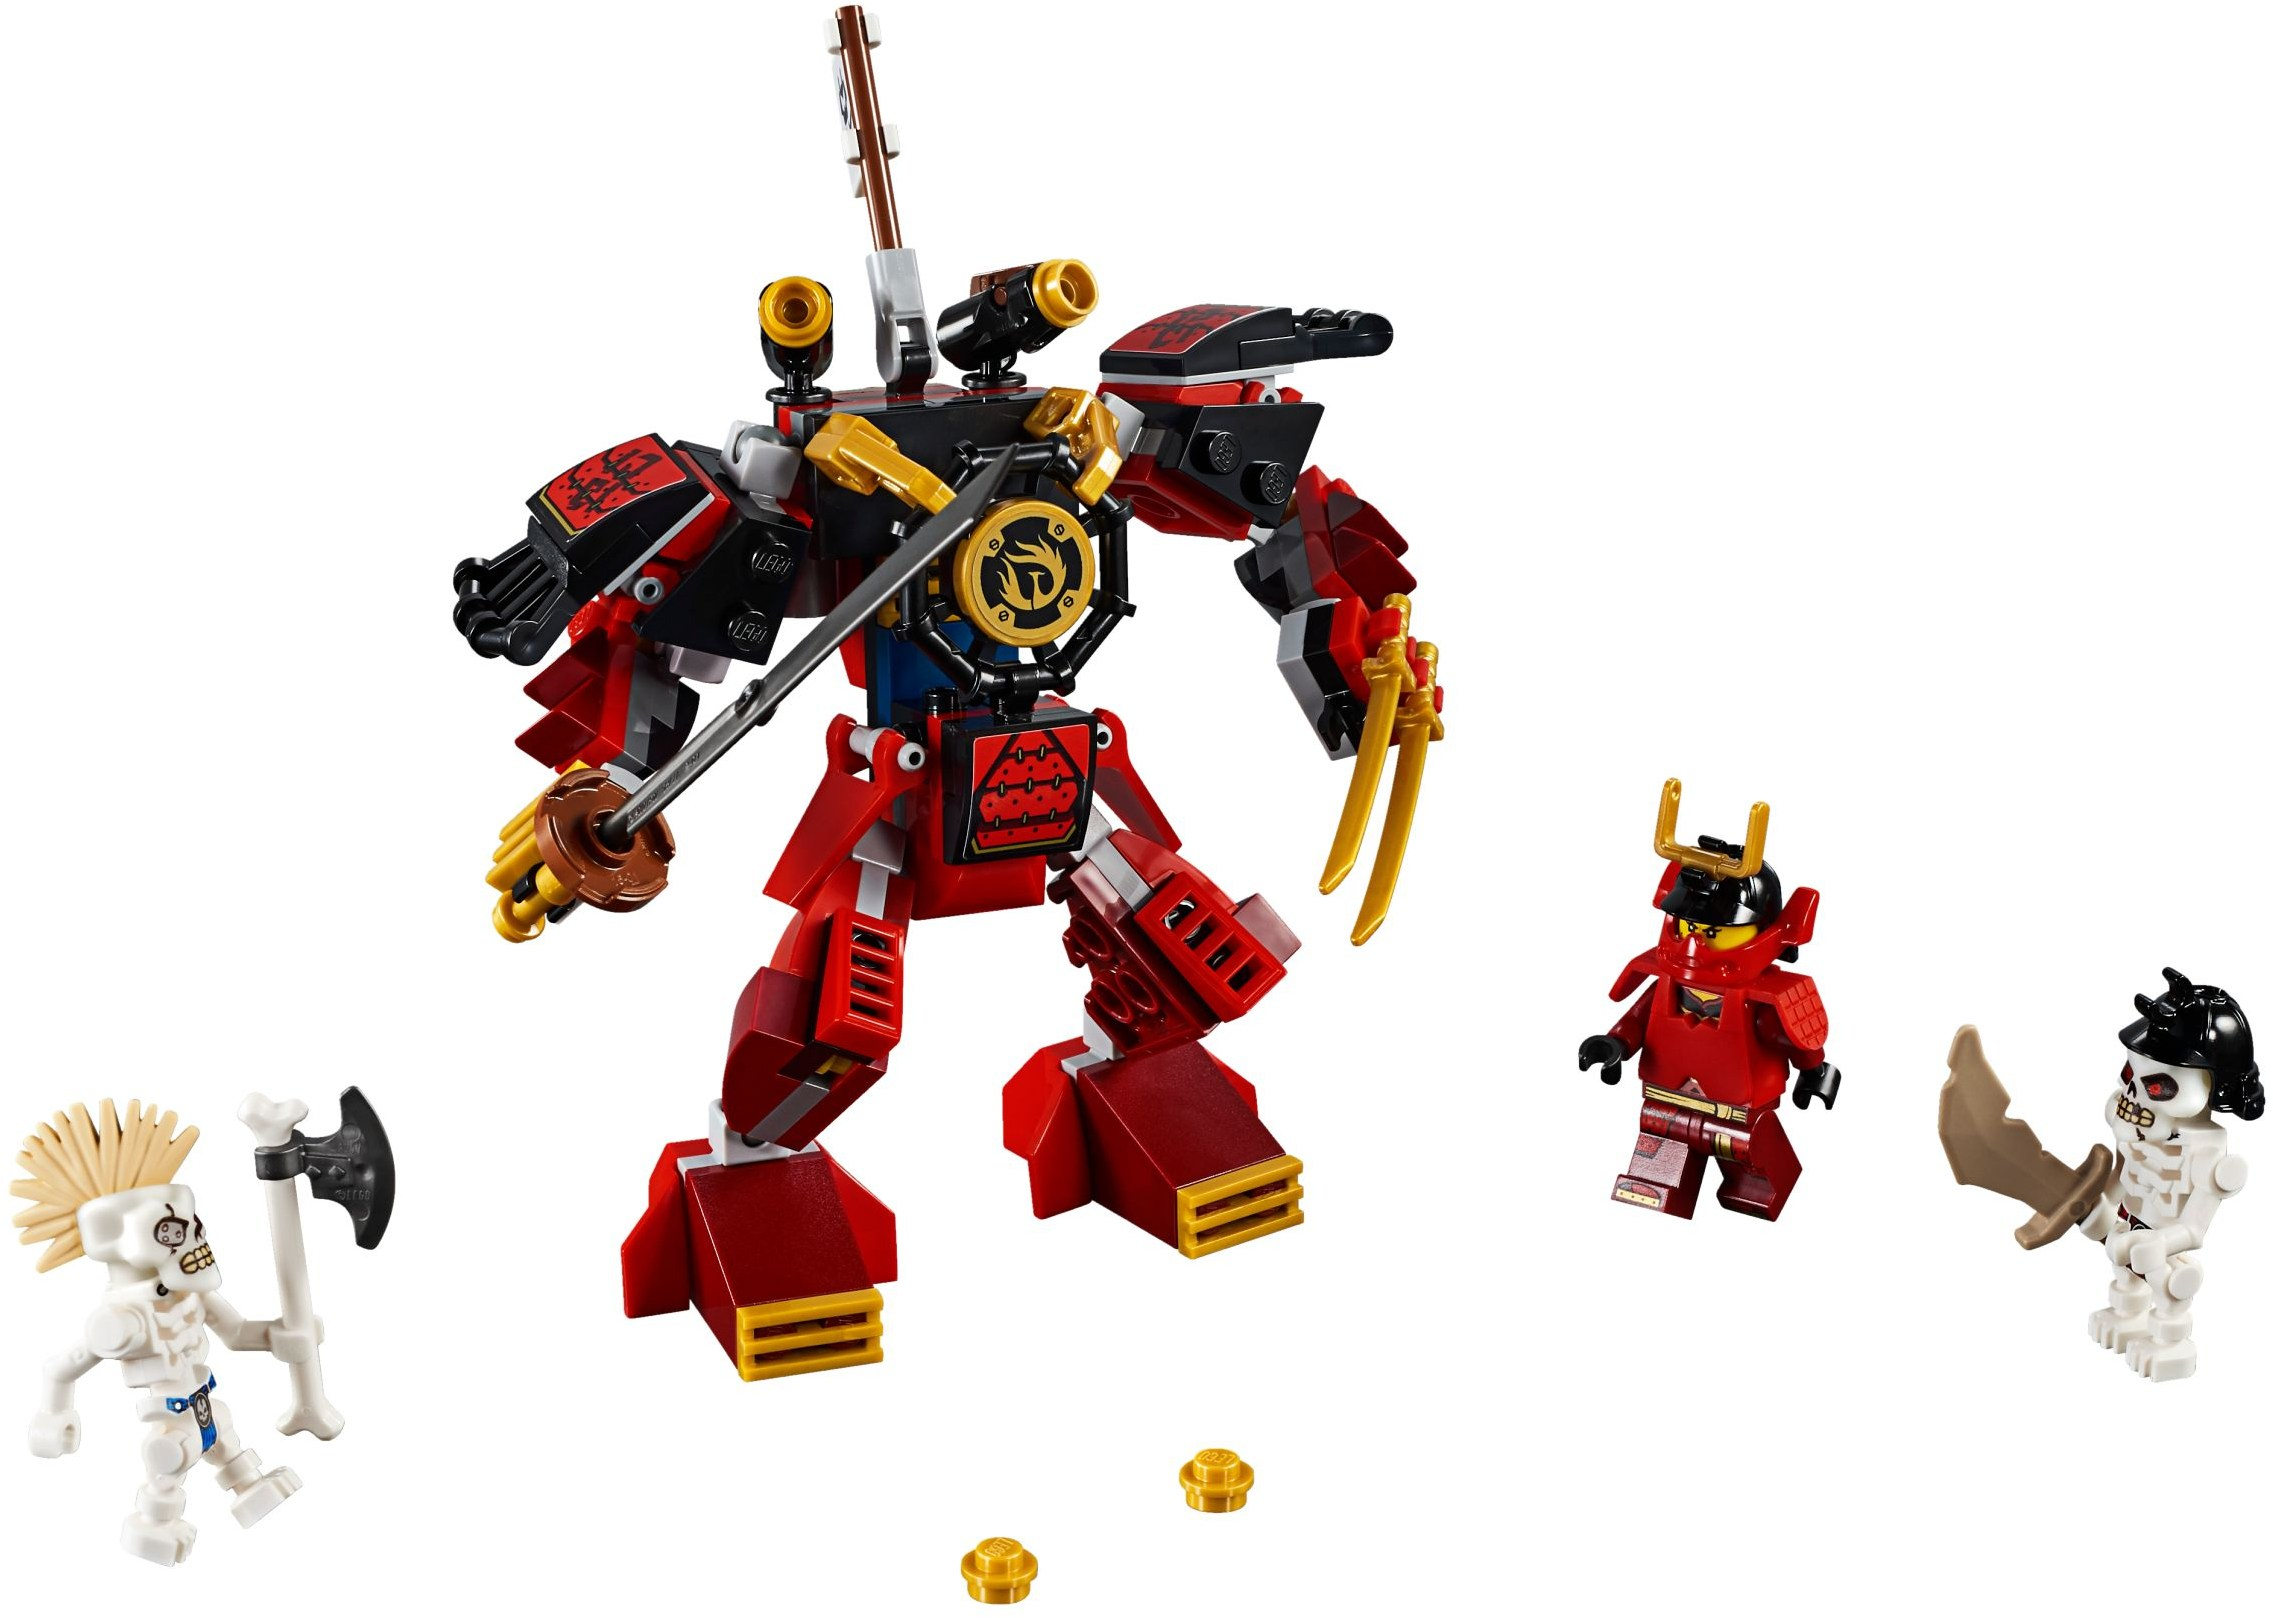 2019 ninjago sets revealed brickset lego set guide and. Black Bedroom Furniture Sets. Home Design Ideas